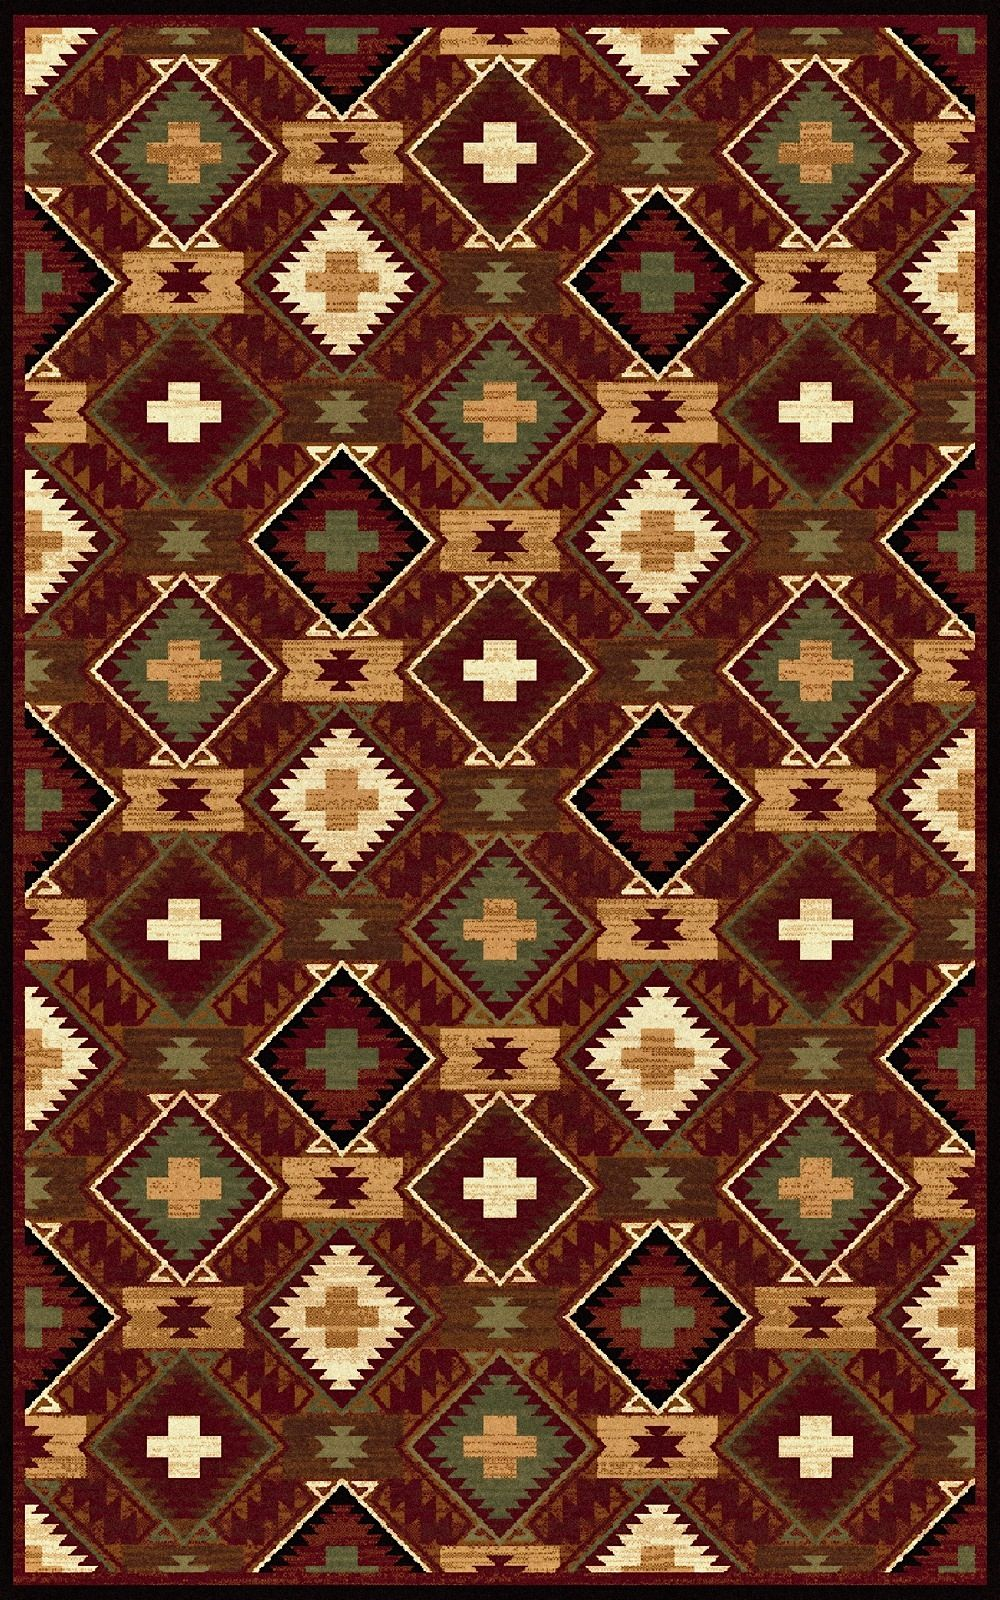 surya duetto southwestern/lodge area rug collection